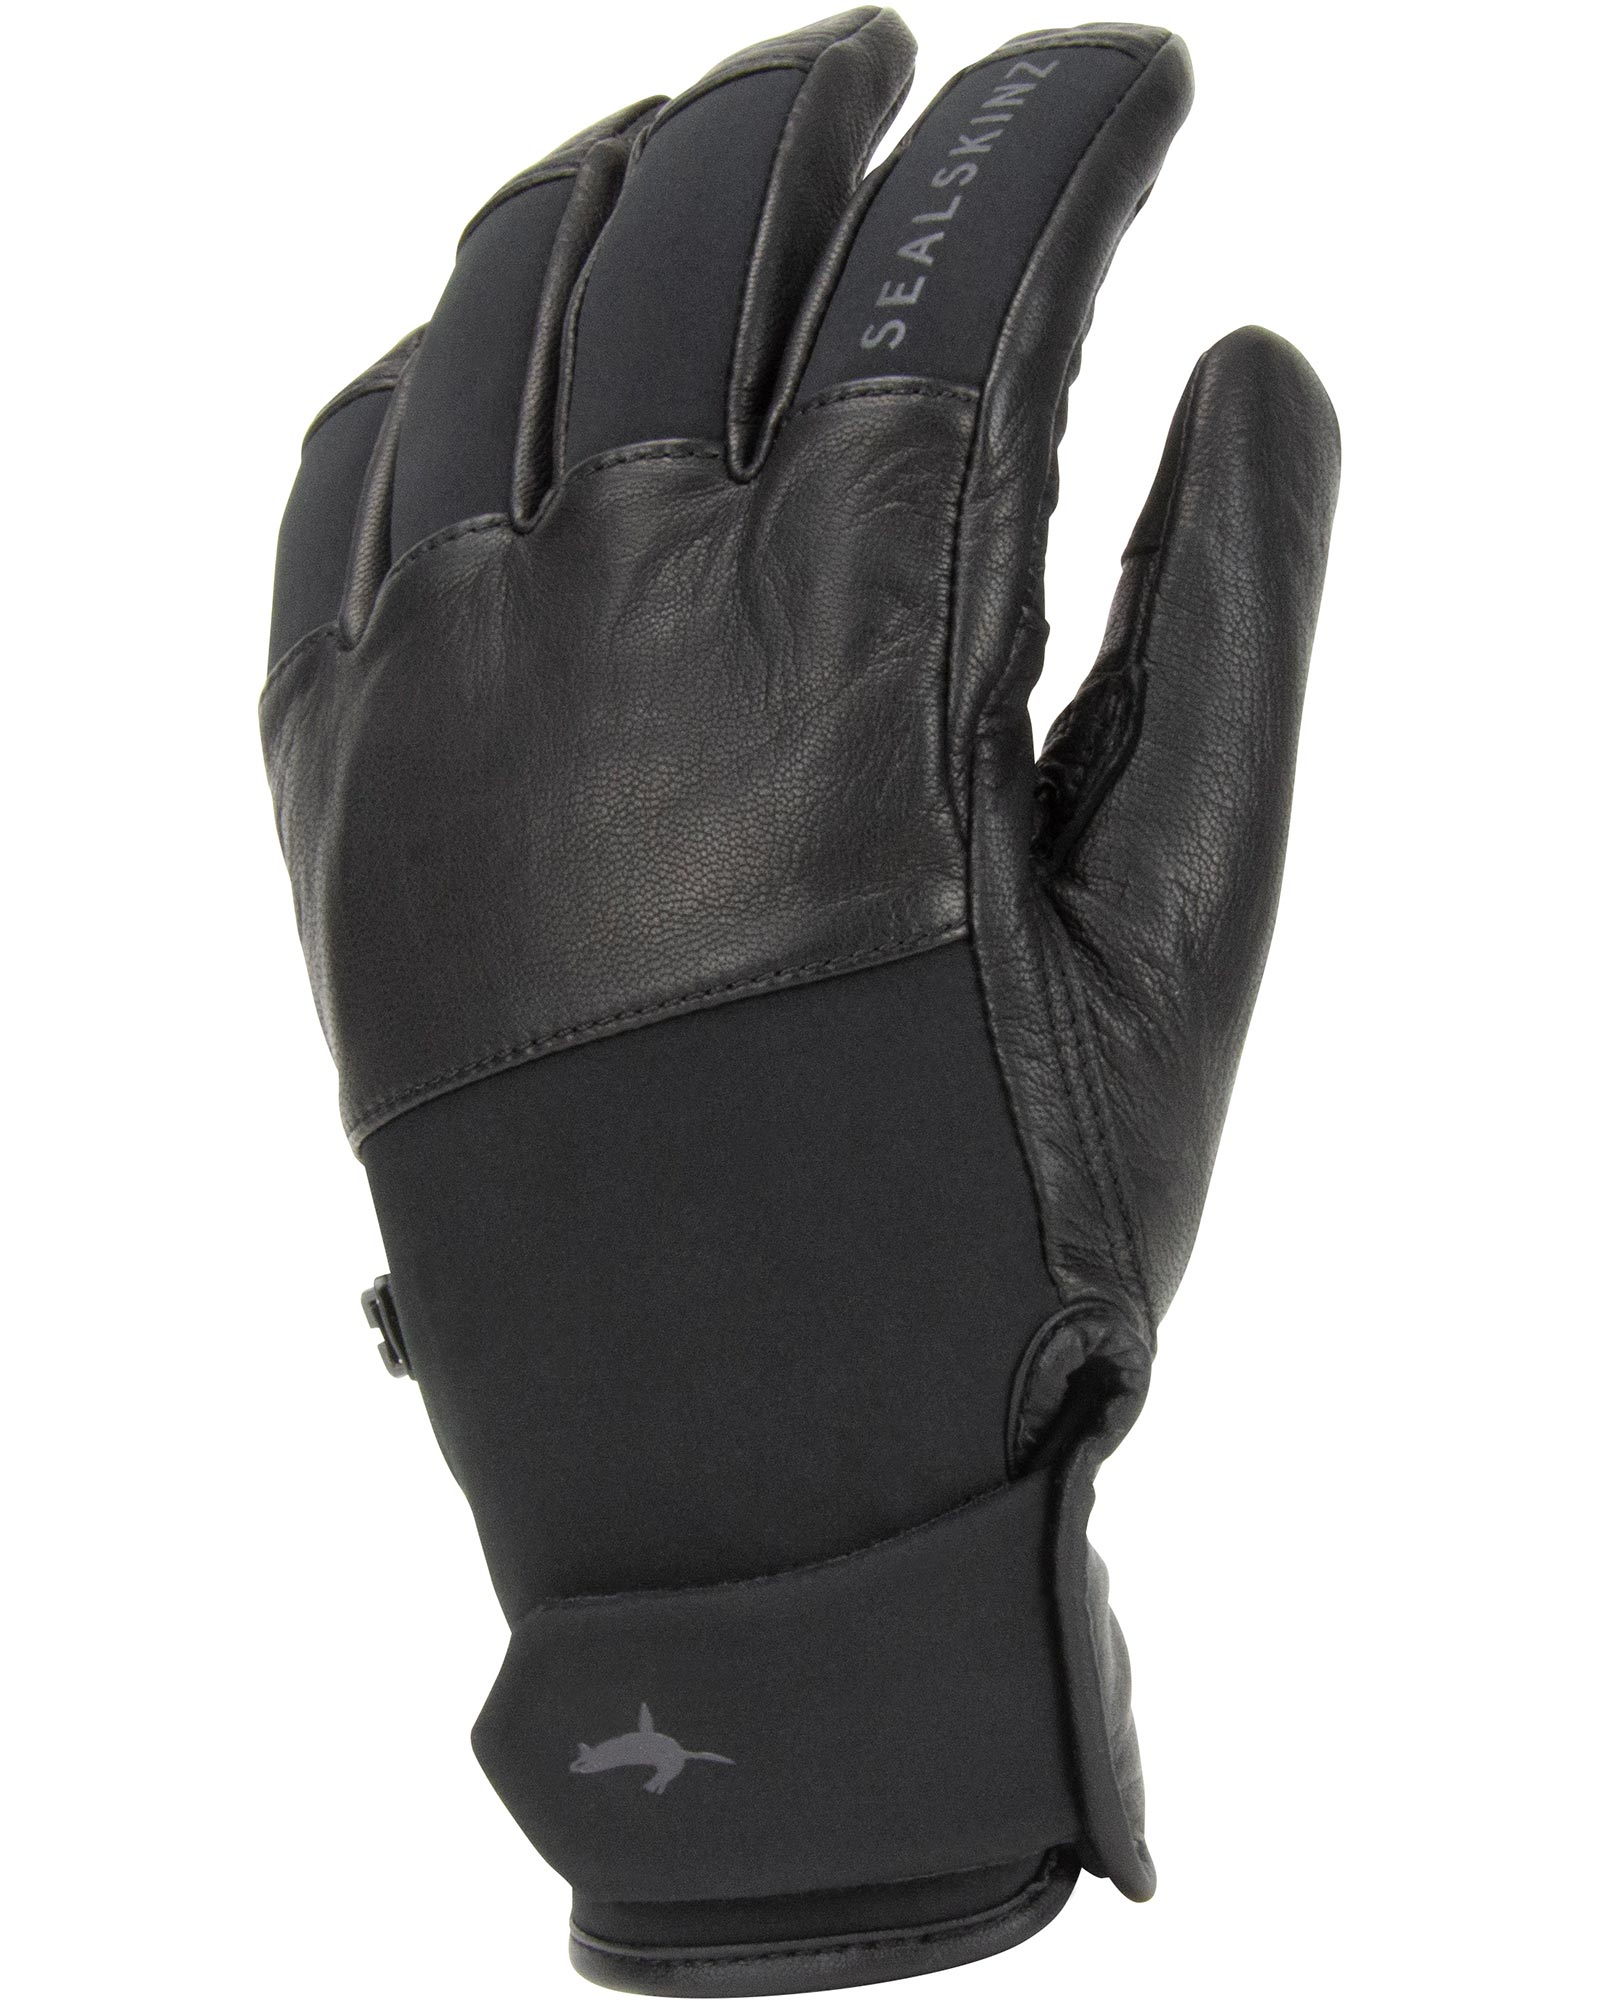 SealSkinz Fusion Control Cold Weather Gloves 0